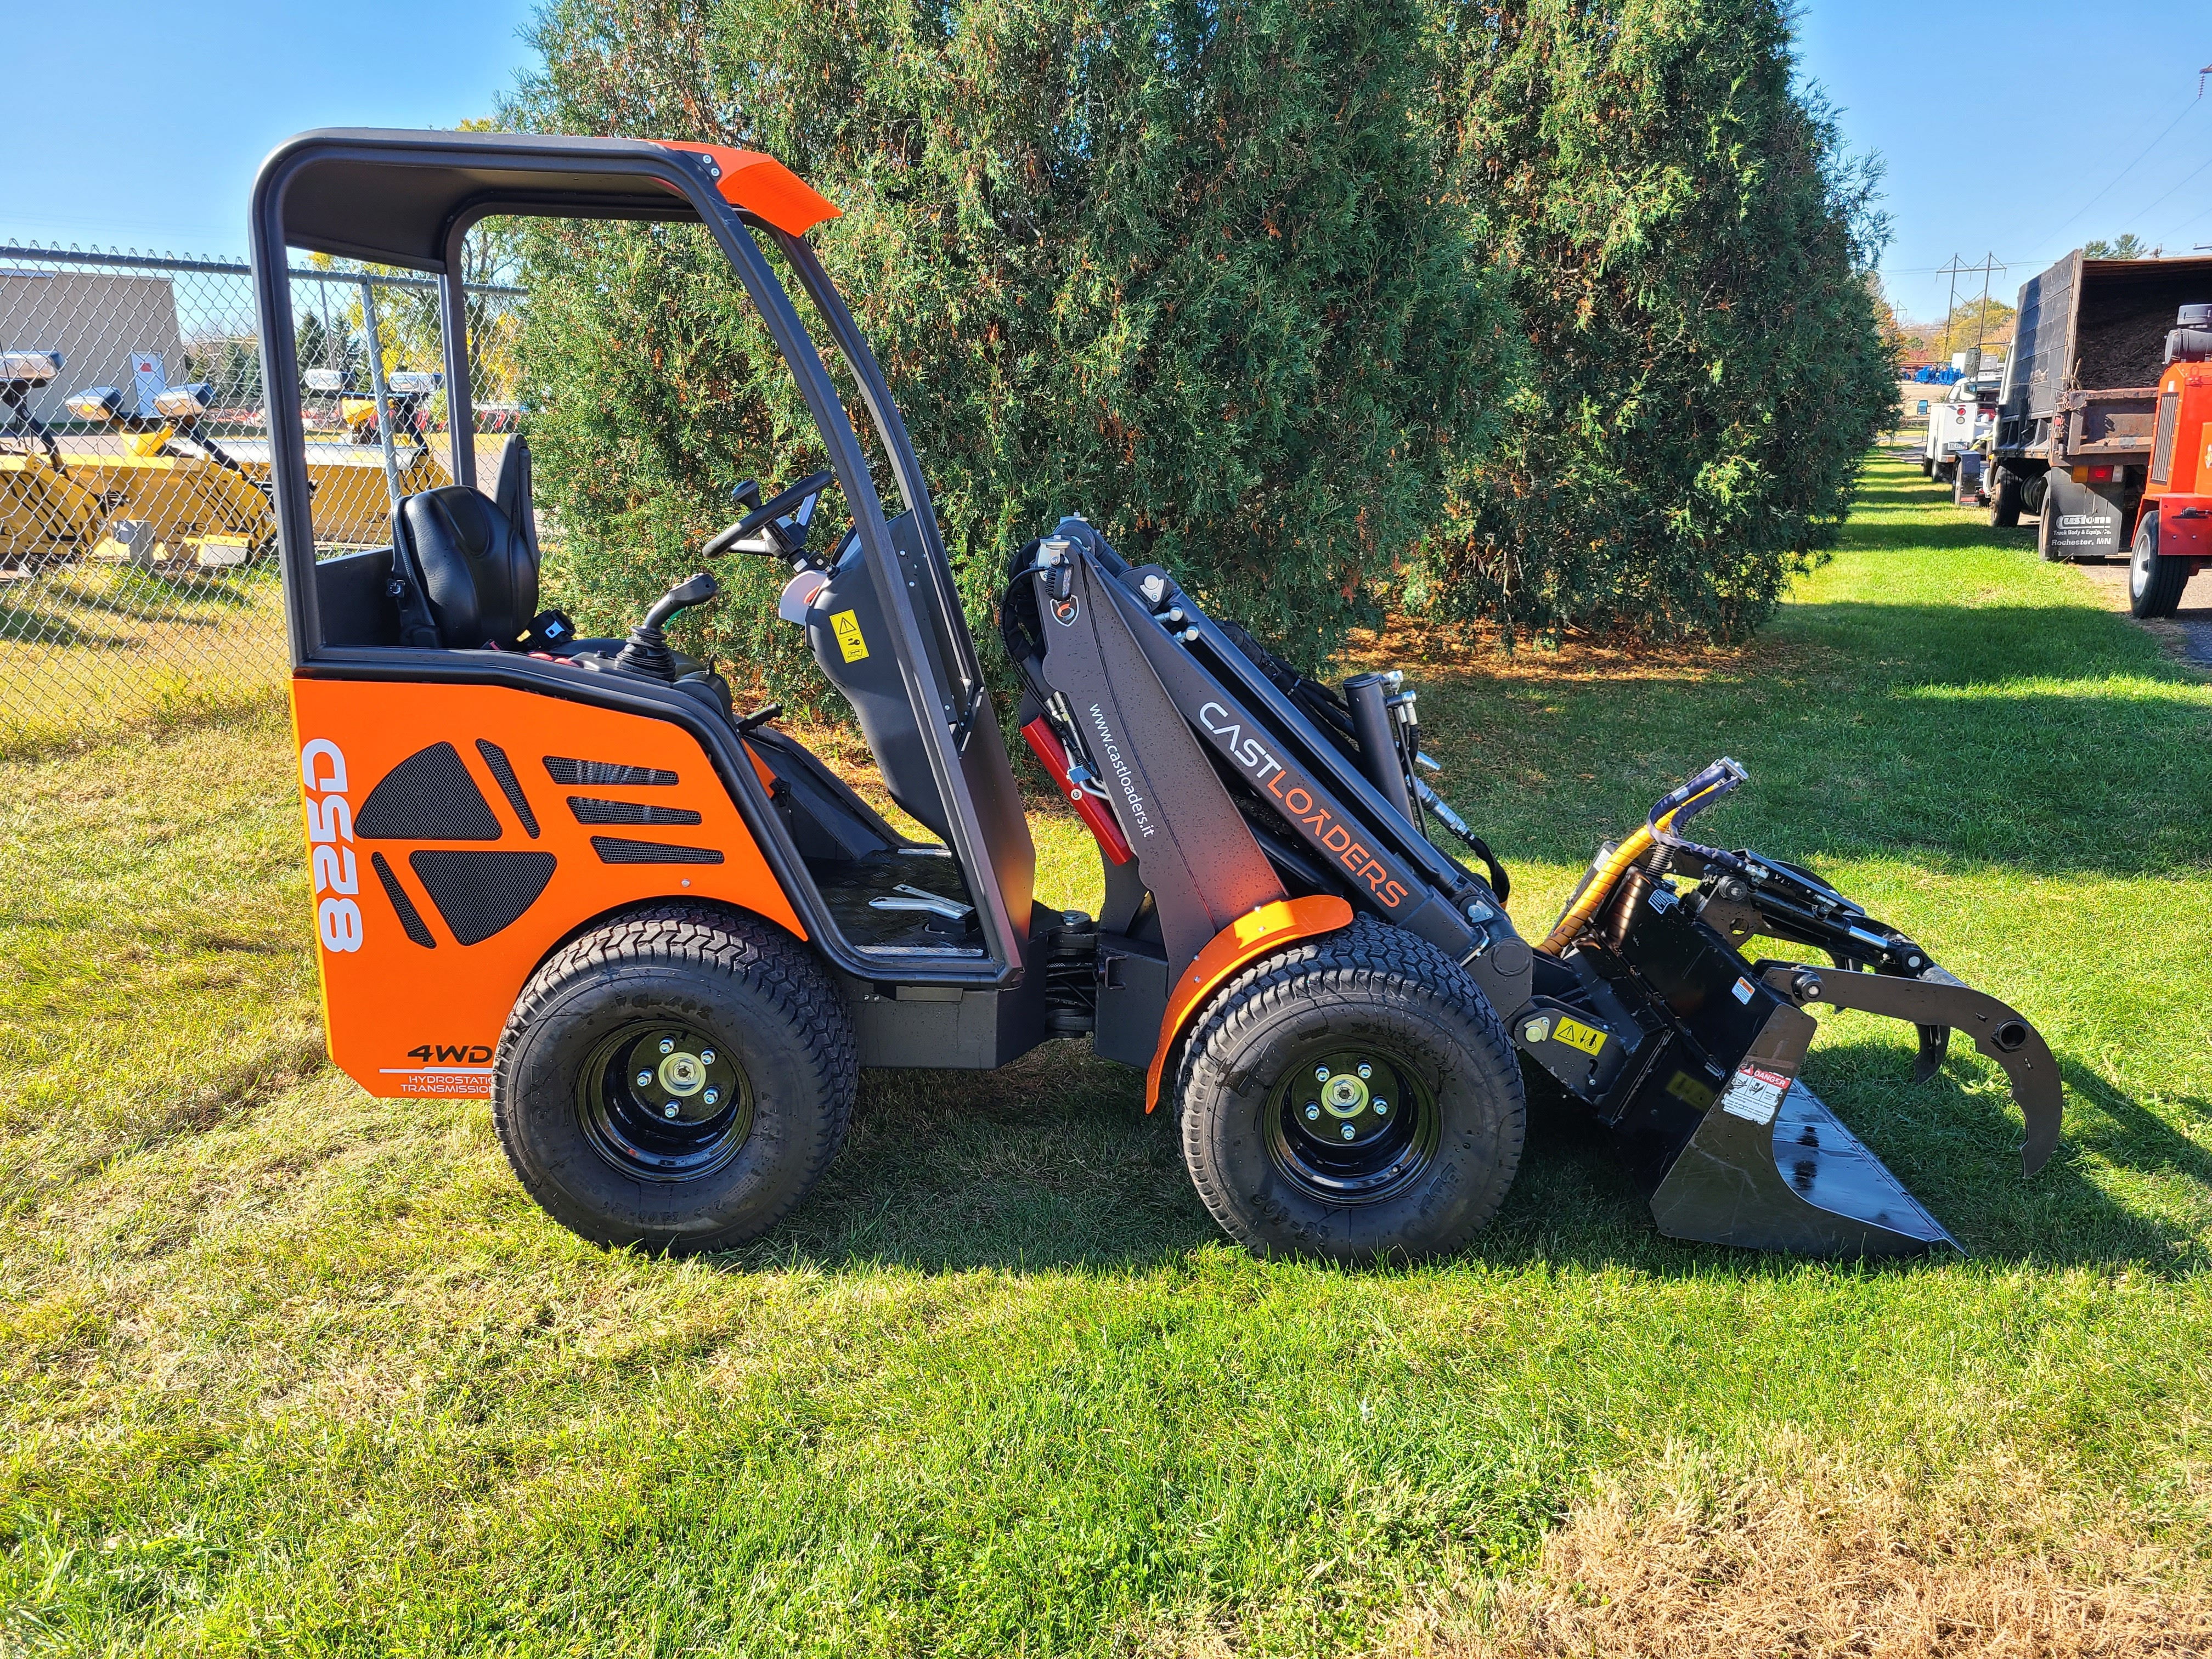 Used, 2019, Cast Loaders, Cast 825D, Loaders